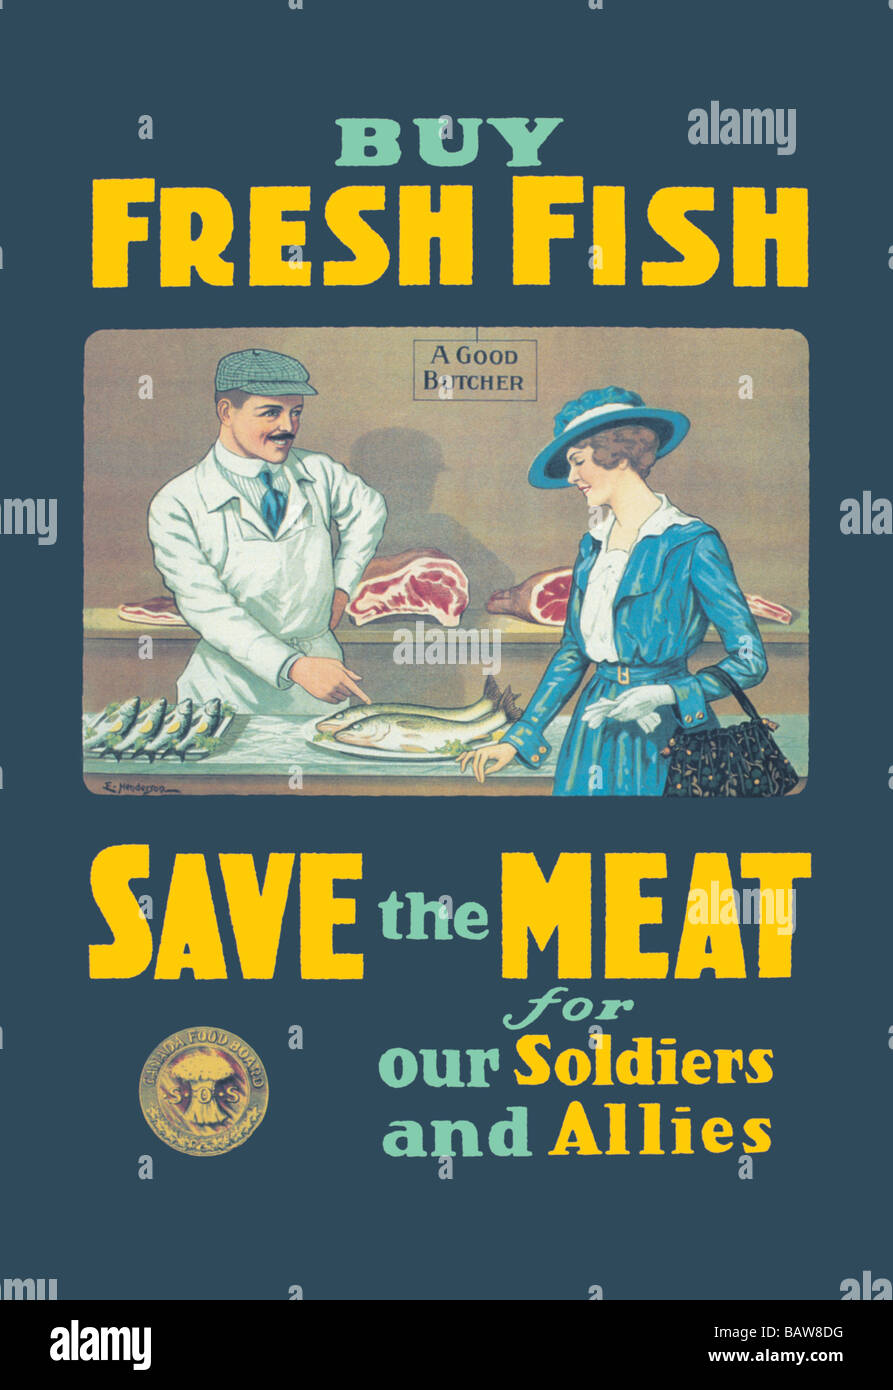 Buy Fresh Fish - Save the Meat for our Soldiers and Allies - Stock Image